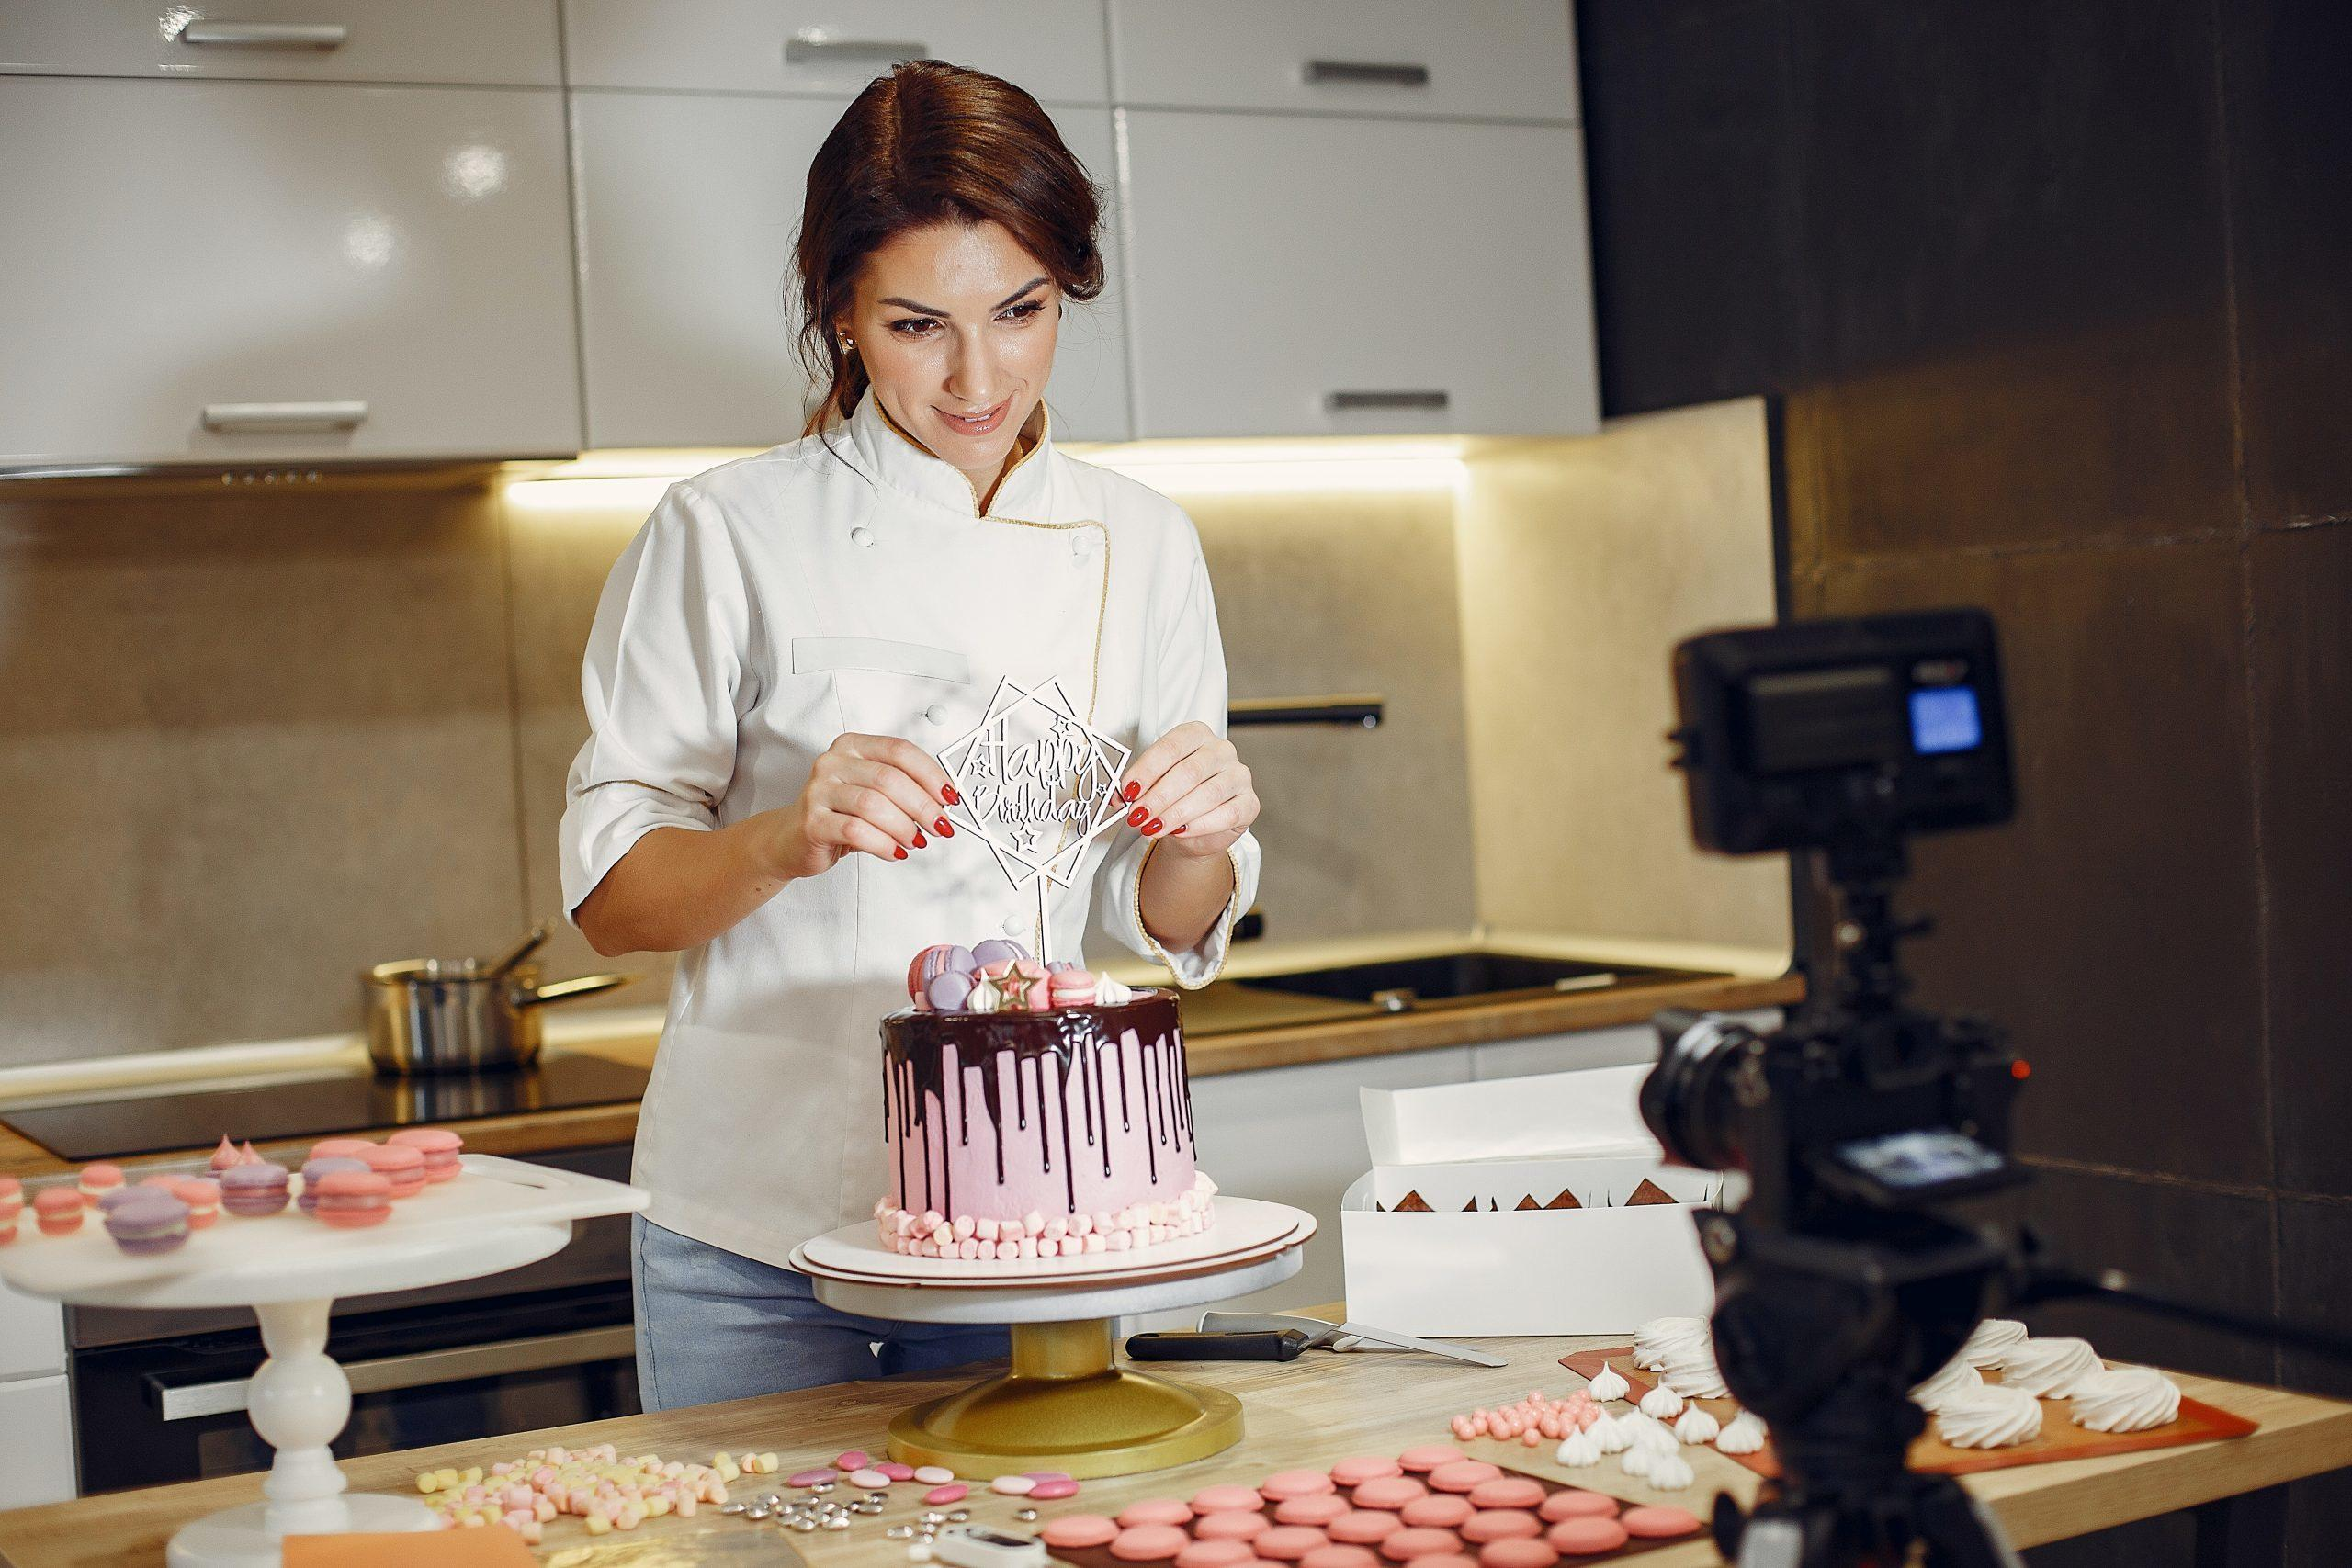 A pastry chef in the kitchen